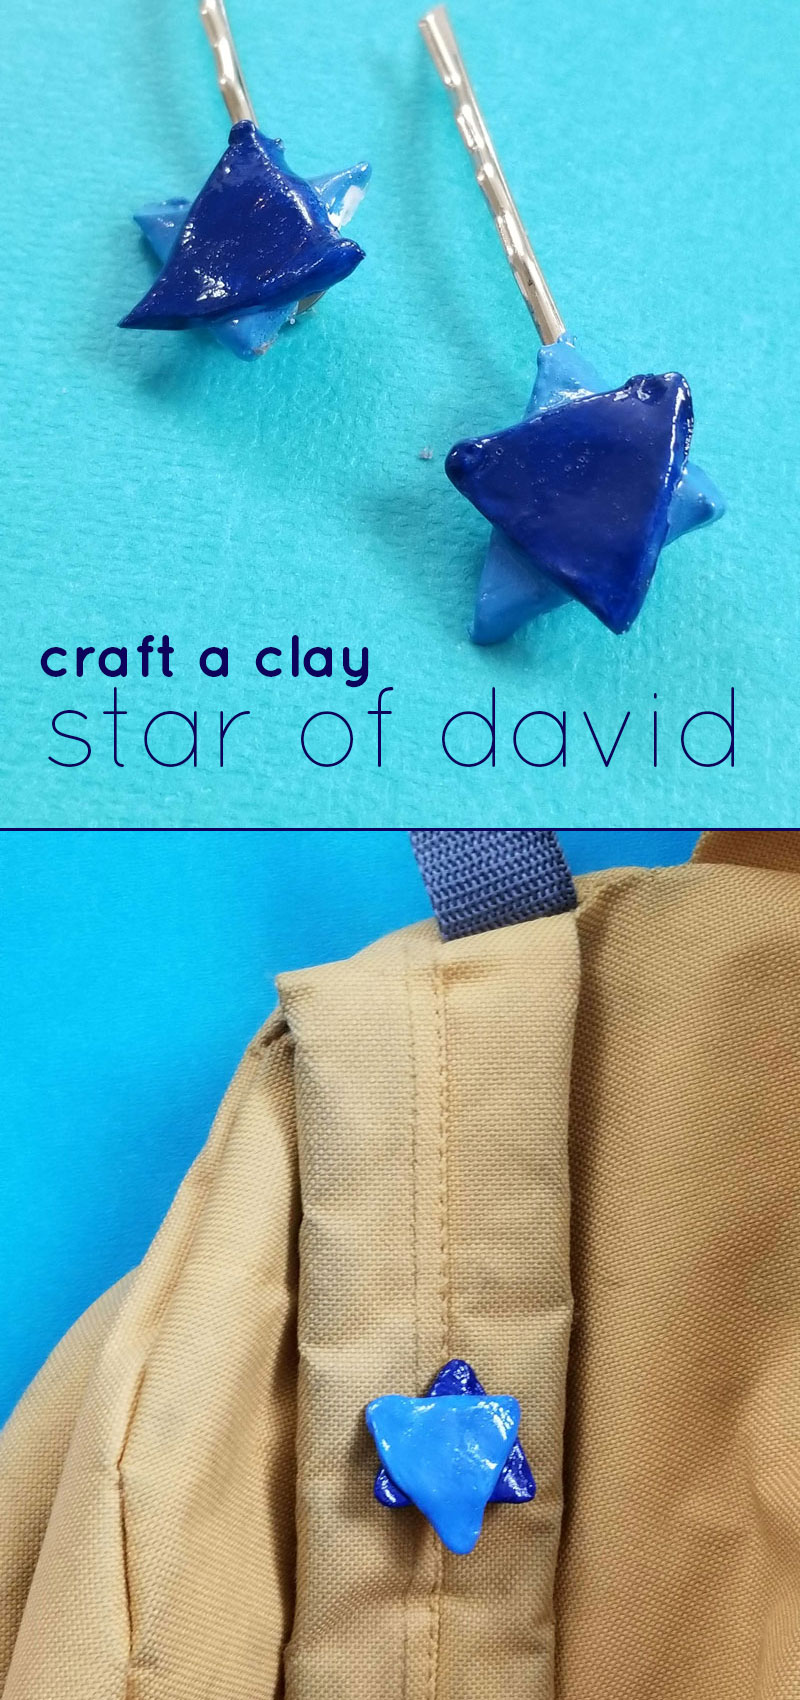 Click to learn how to craft some clay star of david kippah clips and pins - a fun upsherin idea and Jewish craft for kids and adults!